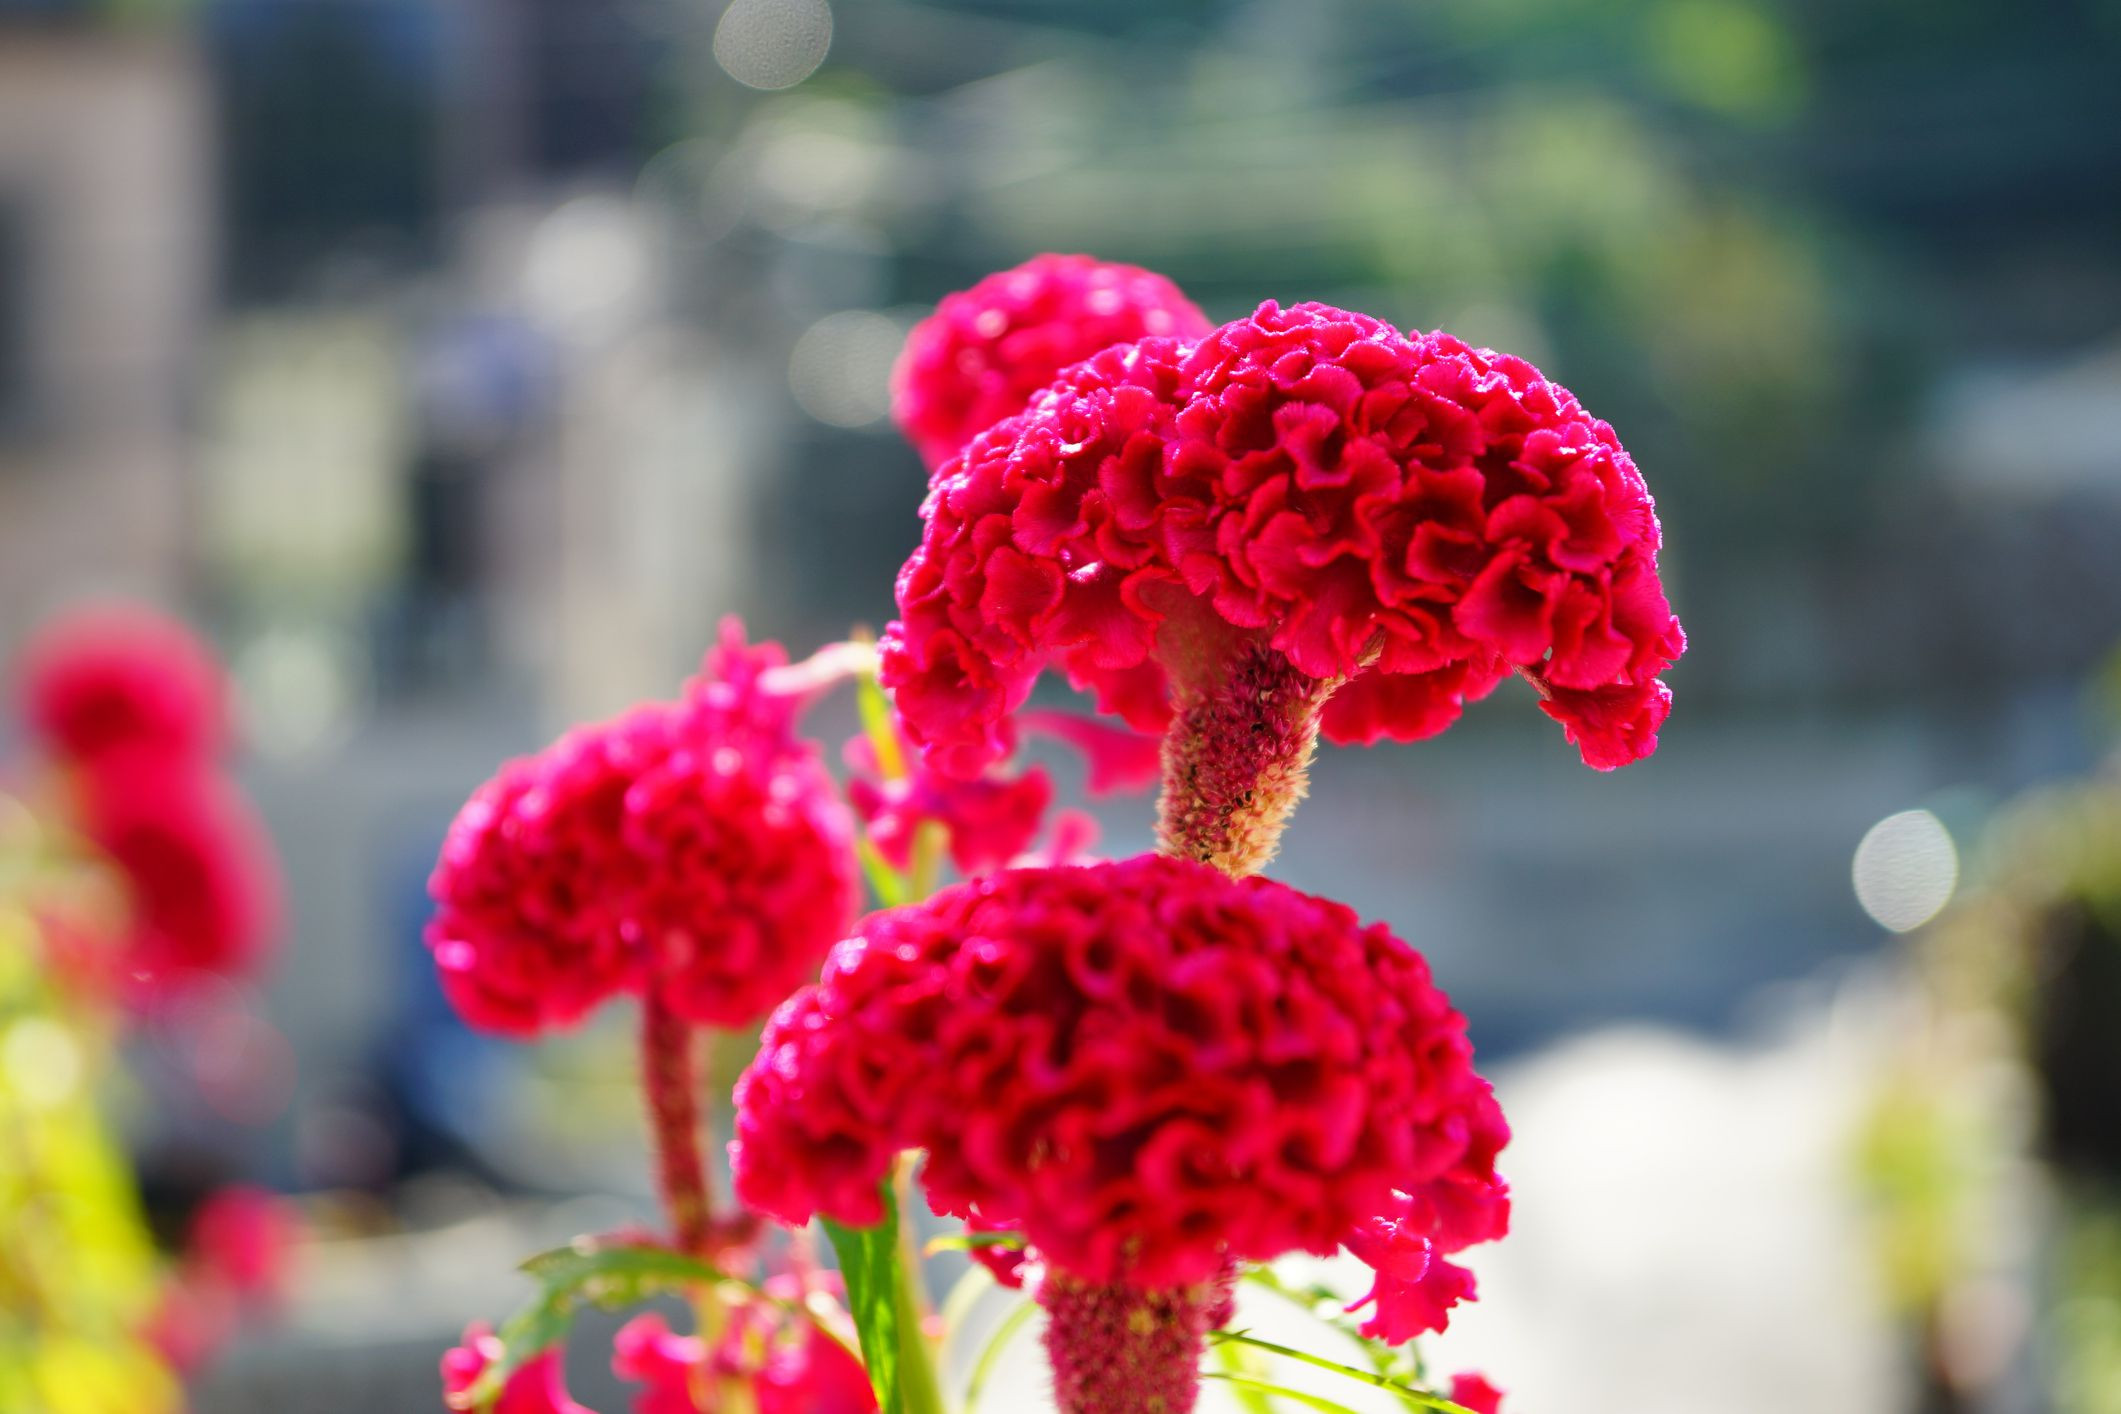 Plume Celosia Flower Luxury Celosia Flowers Fer Plumes Feathers and Blooms